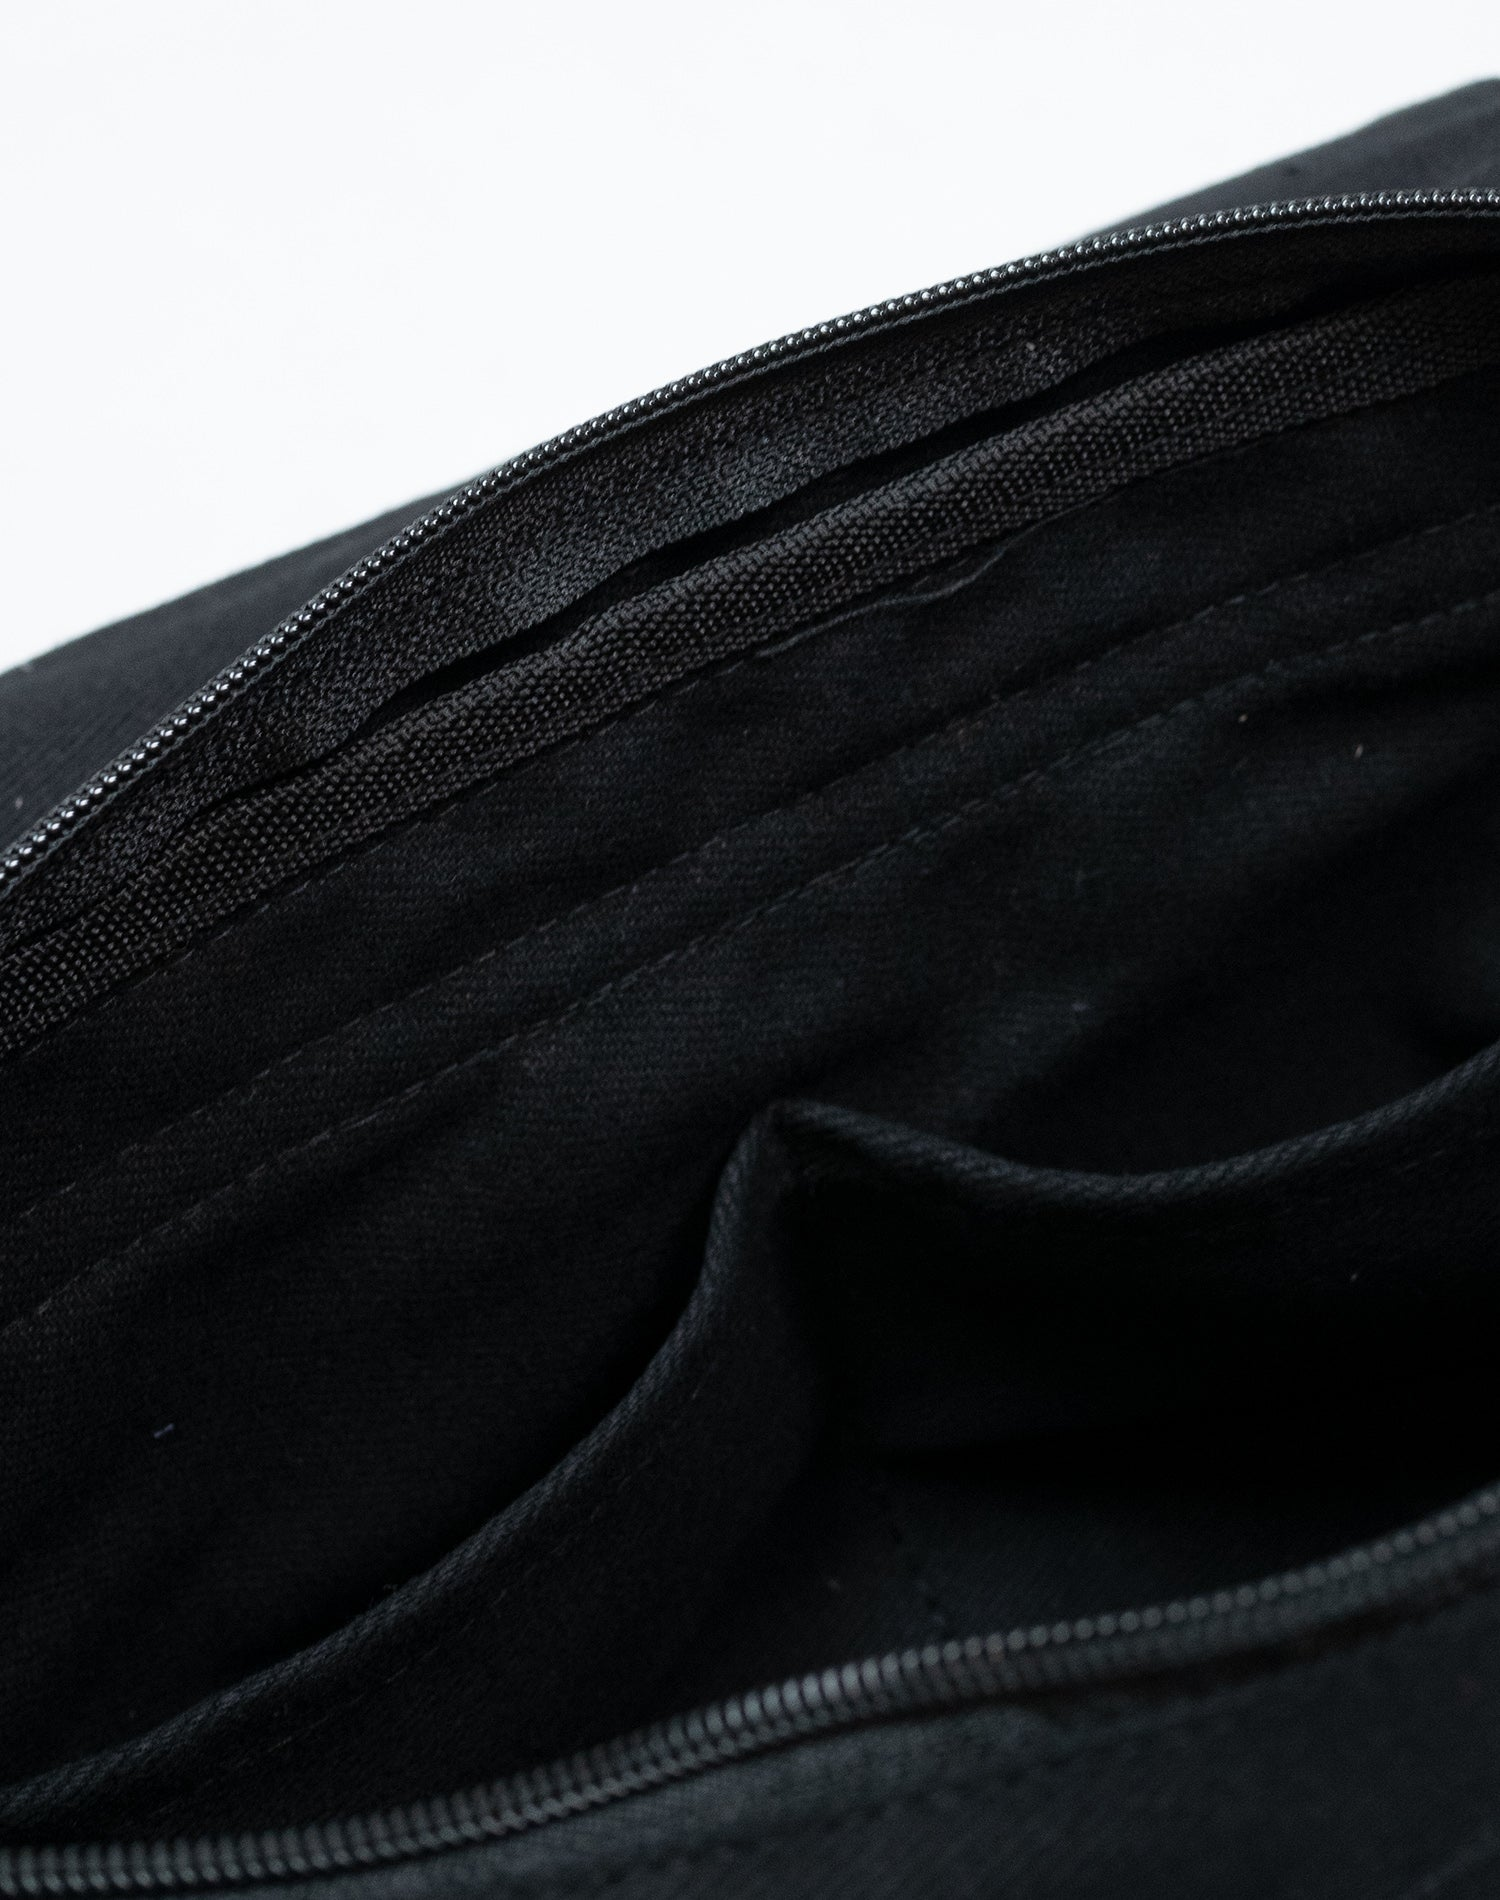 Jet Black Keeply Belt Sling Bag.黑色帆布斜揹腰包